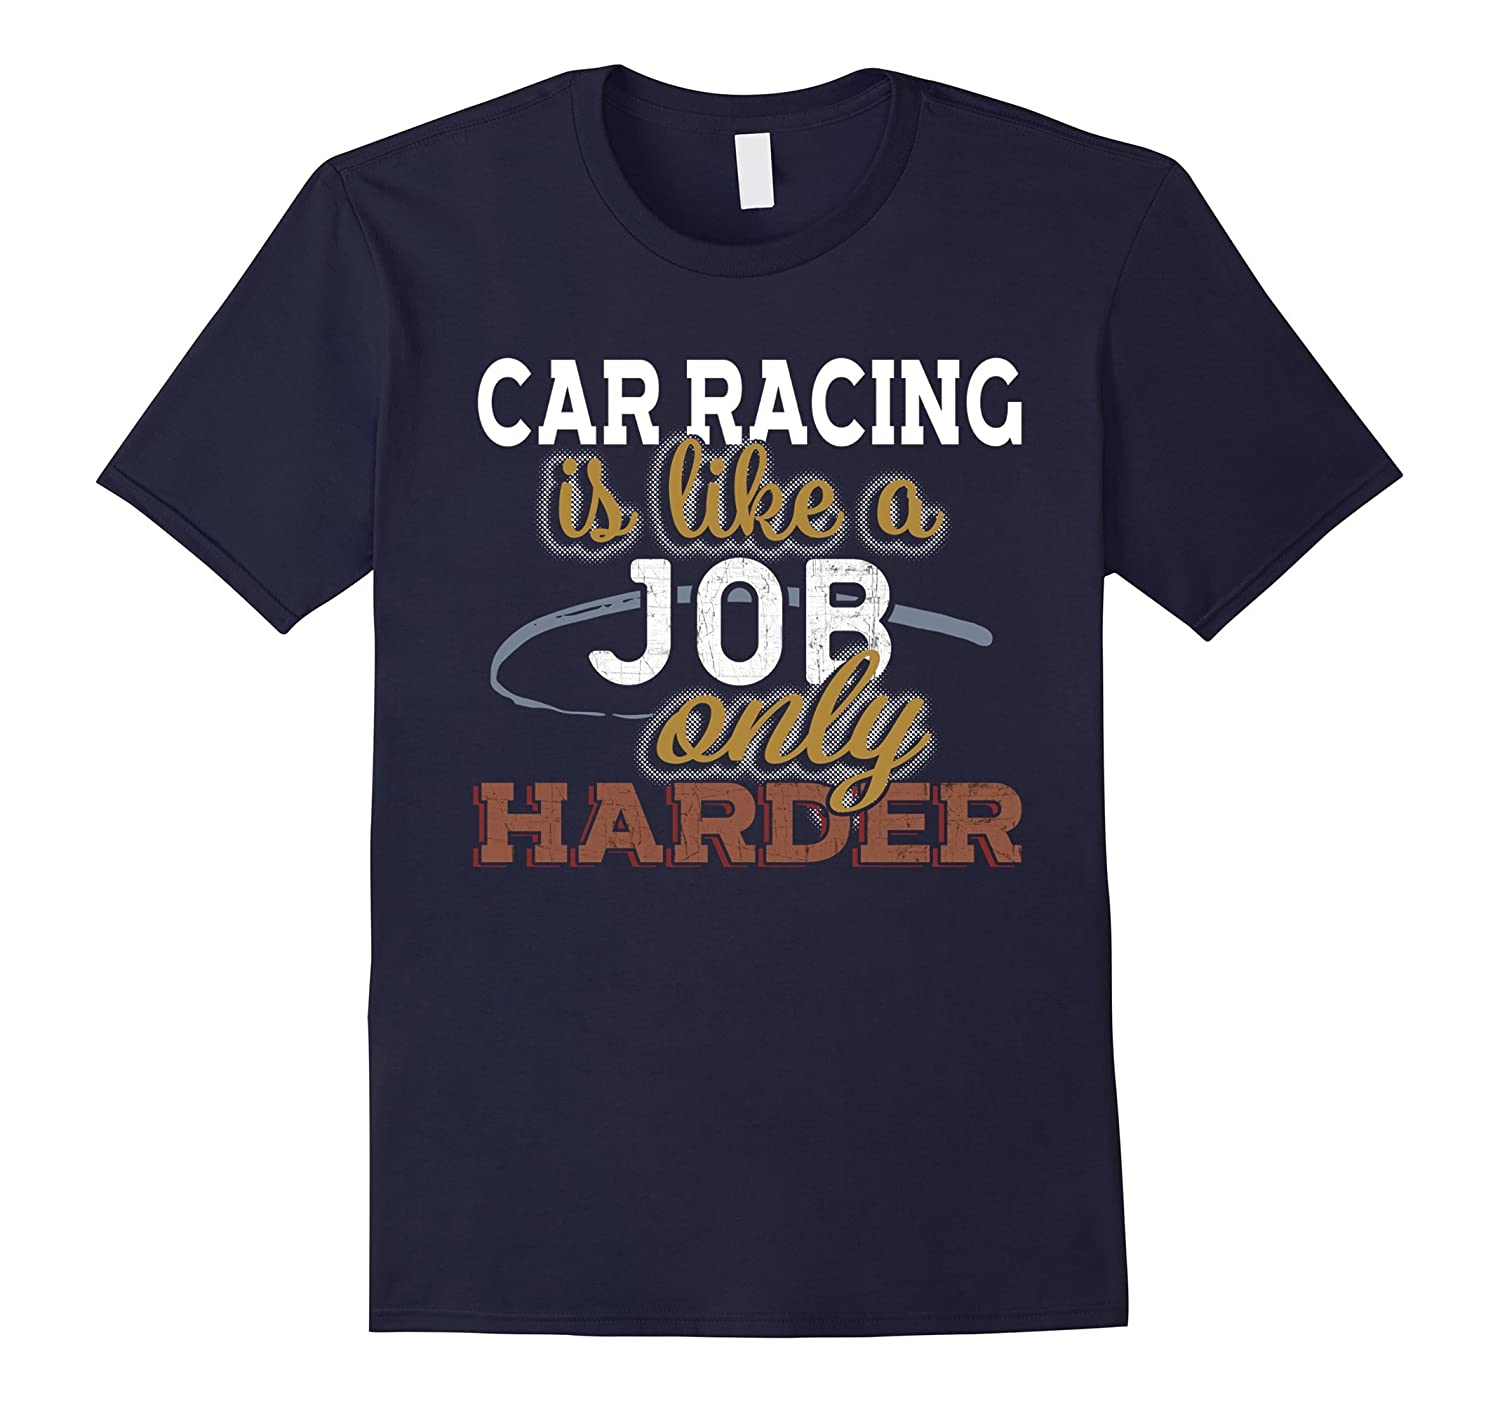 Car Racing is Just Like a Job Only Harder T Shirt-TJ